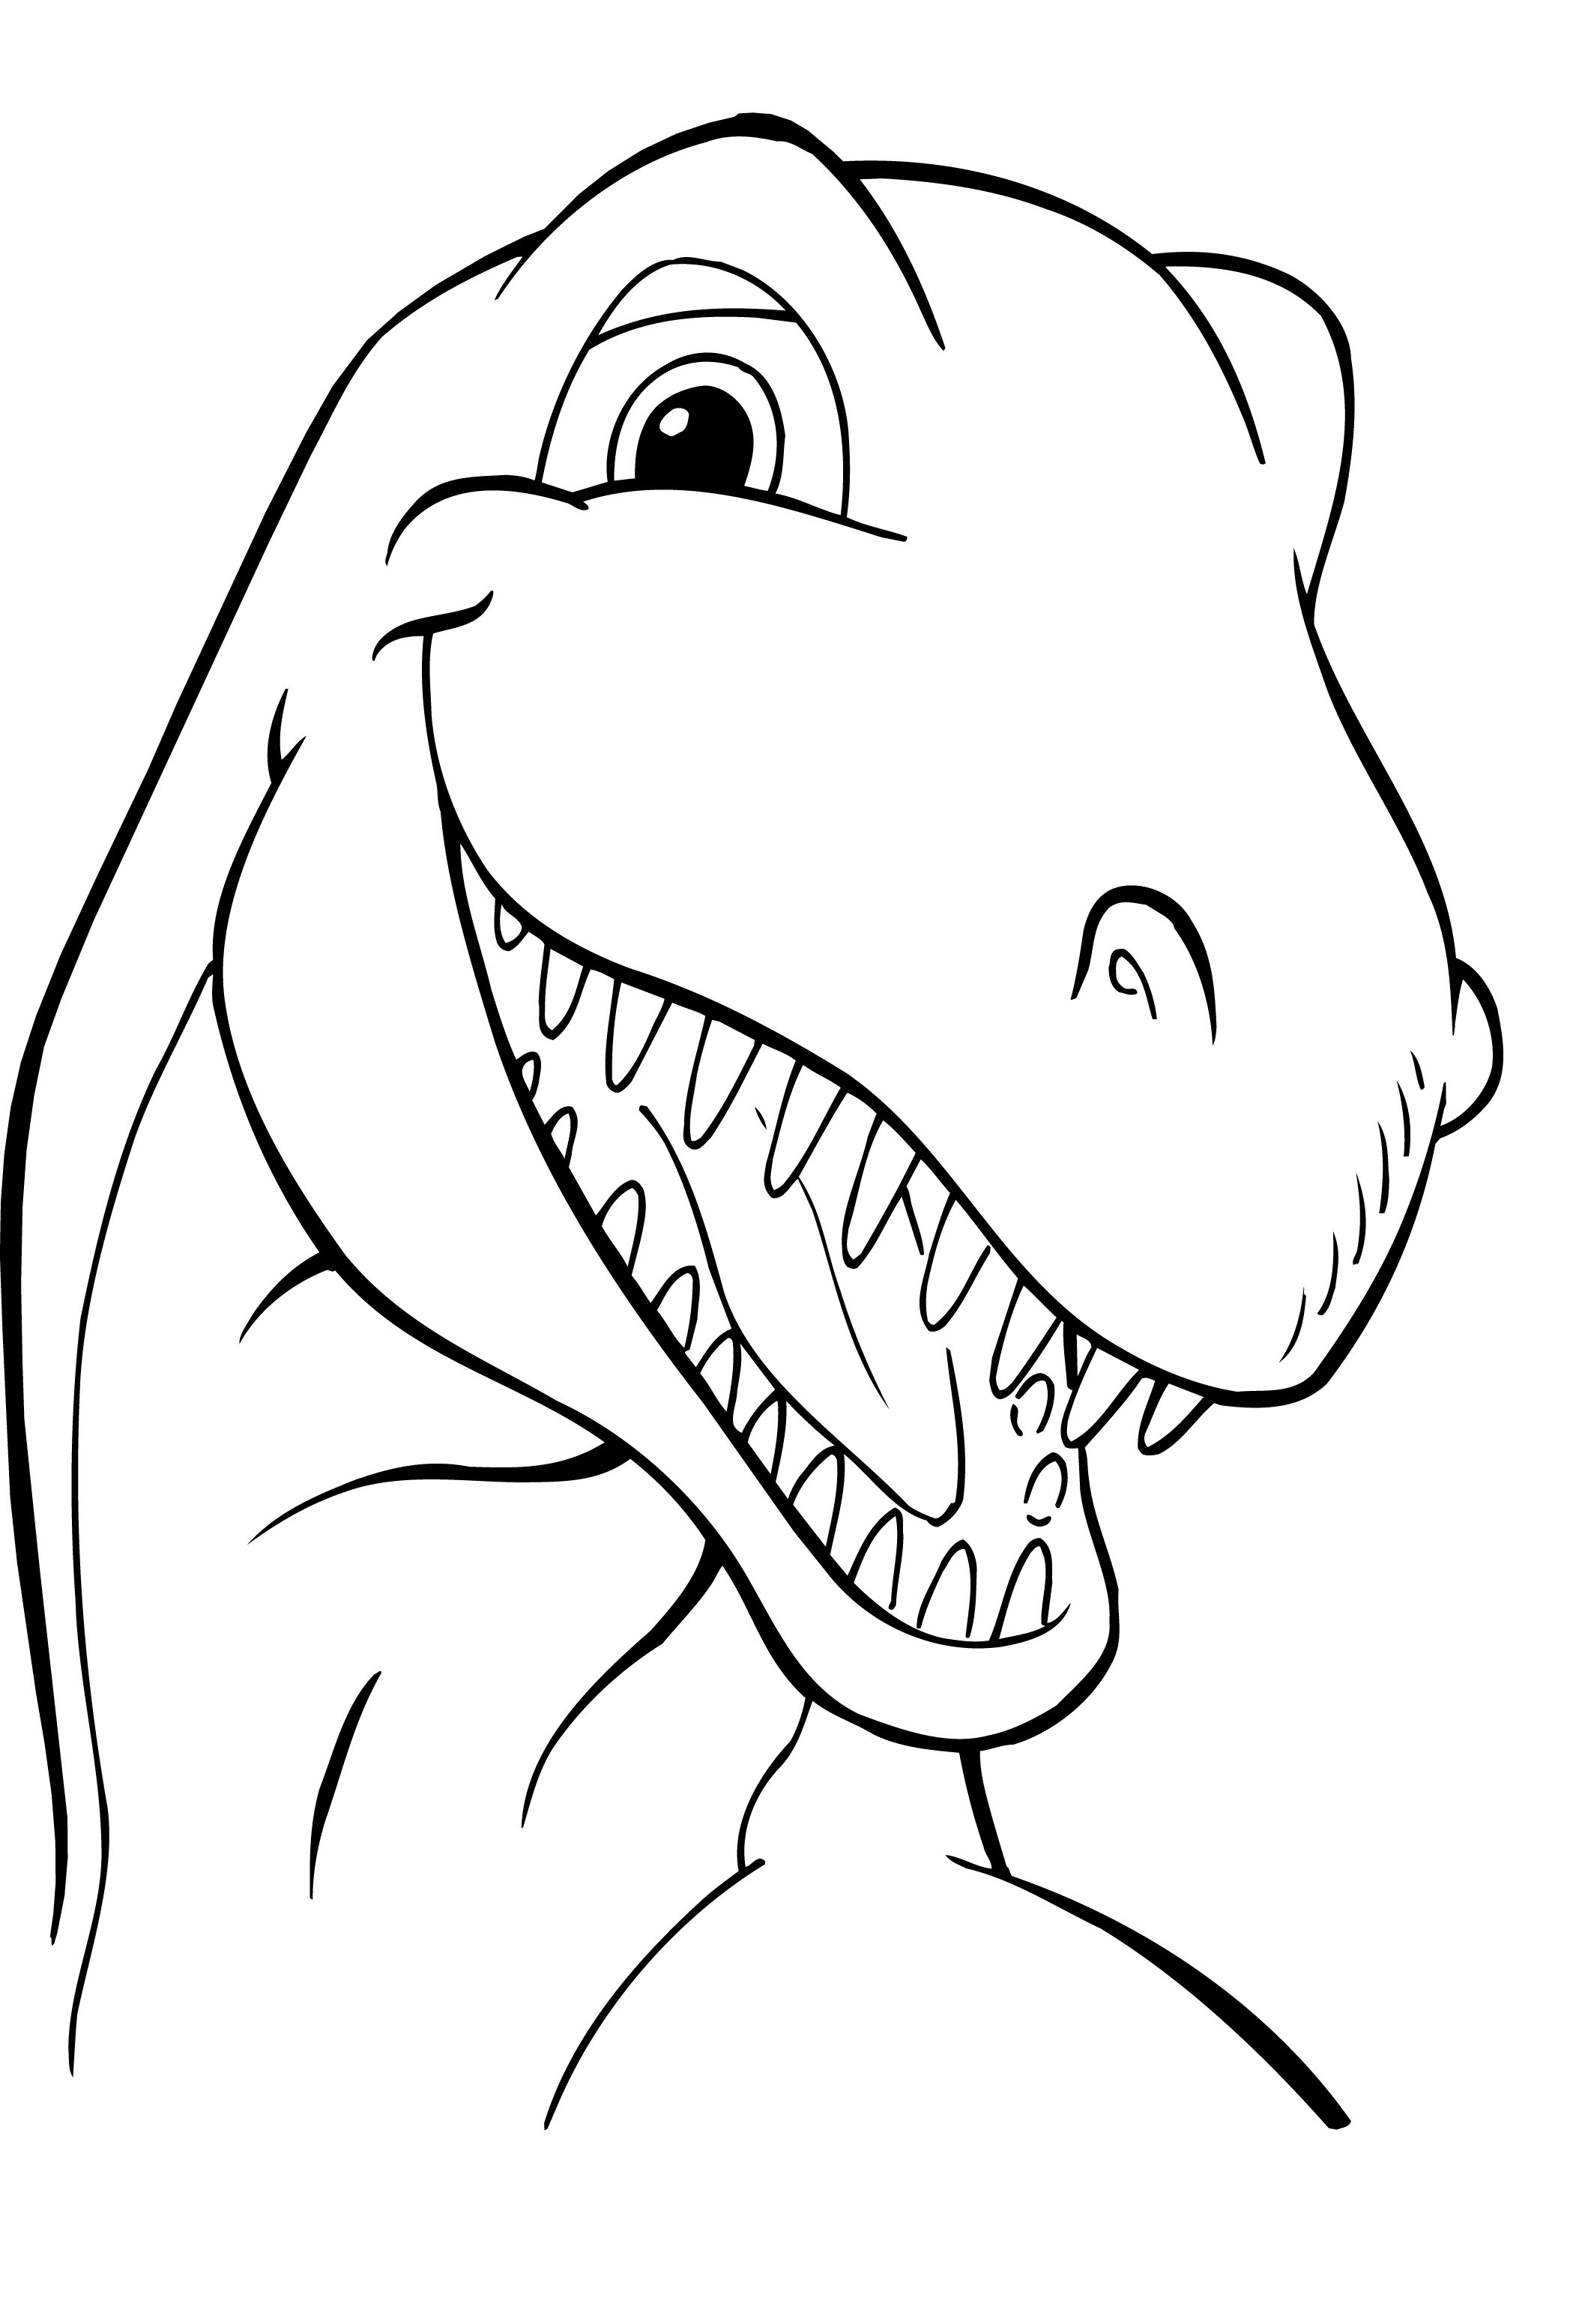 colouring dinosaur pictures dinosaur my coloring land pictures colouring dinosaur